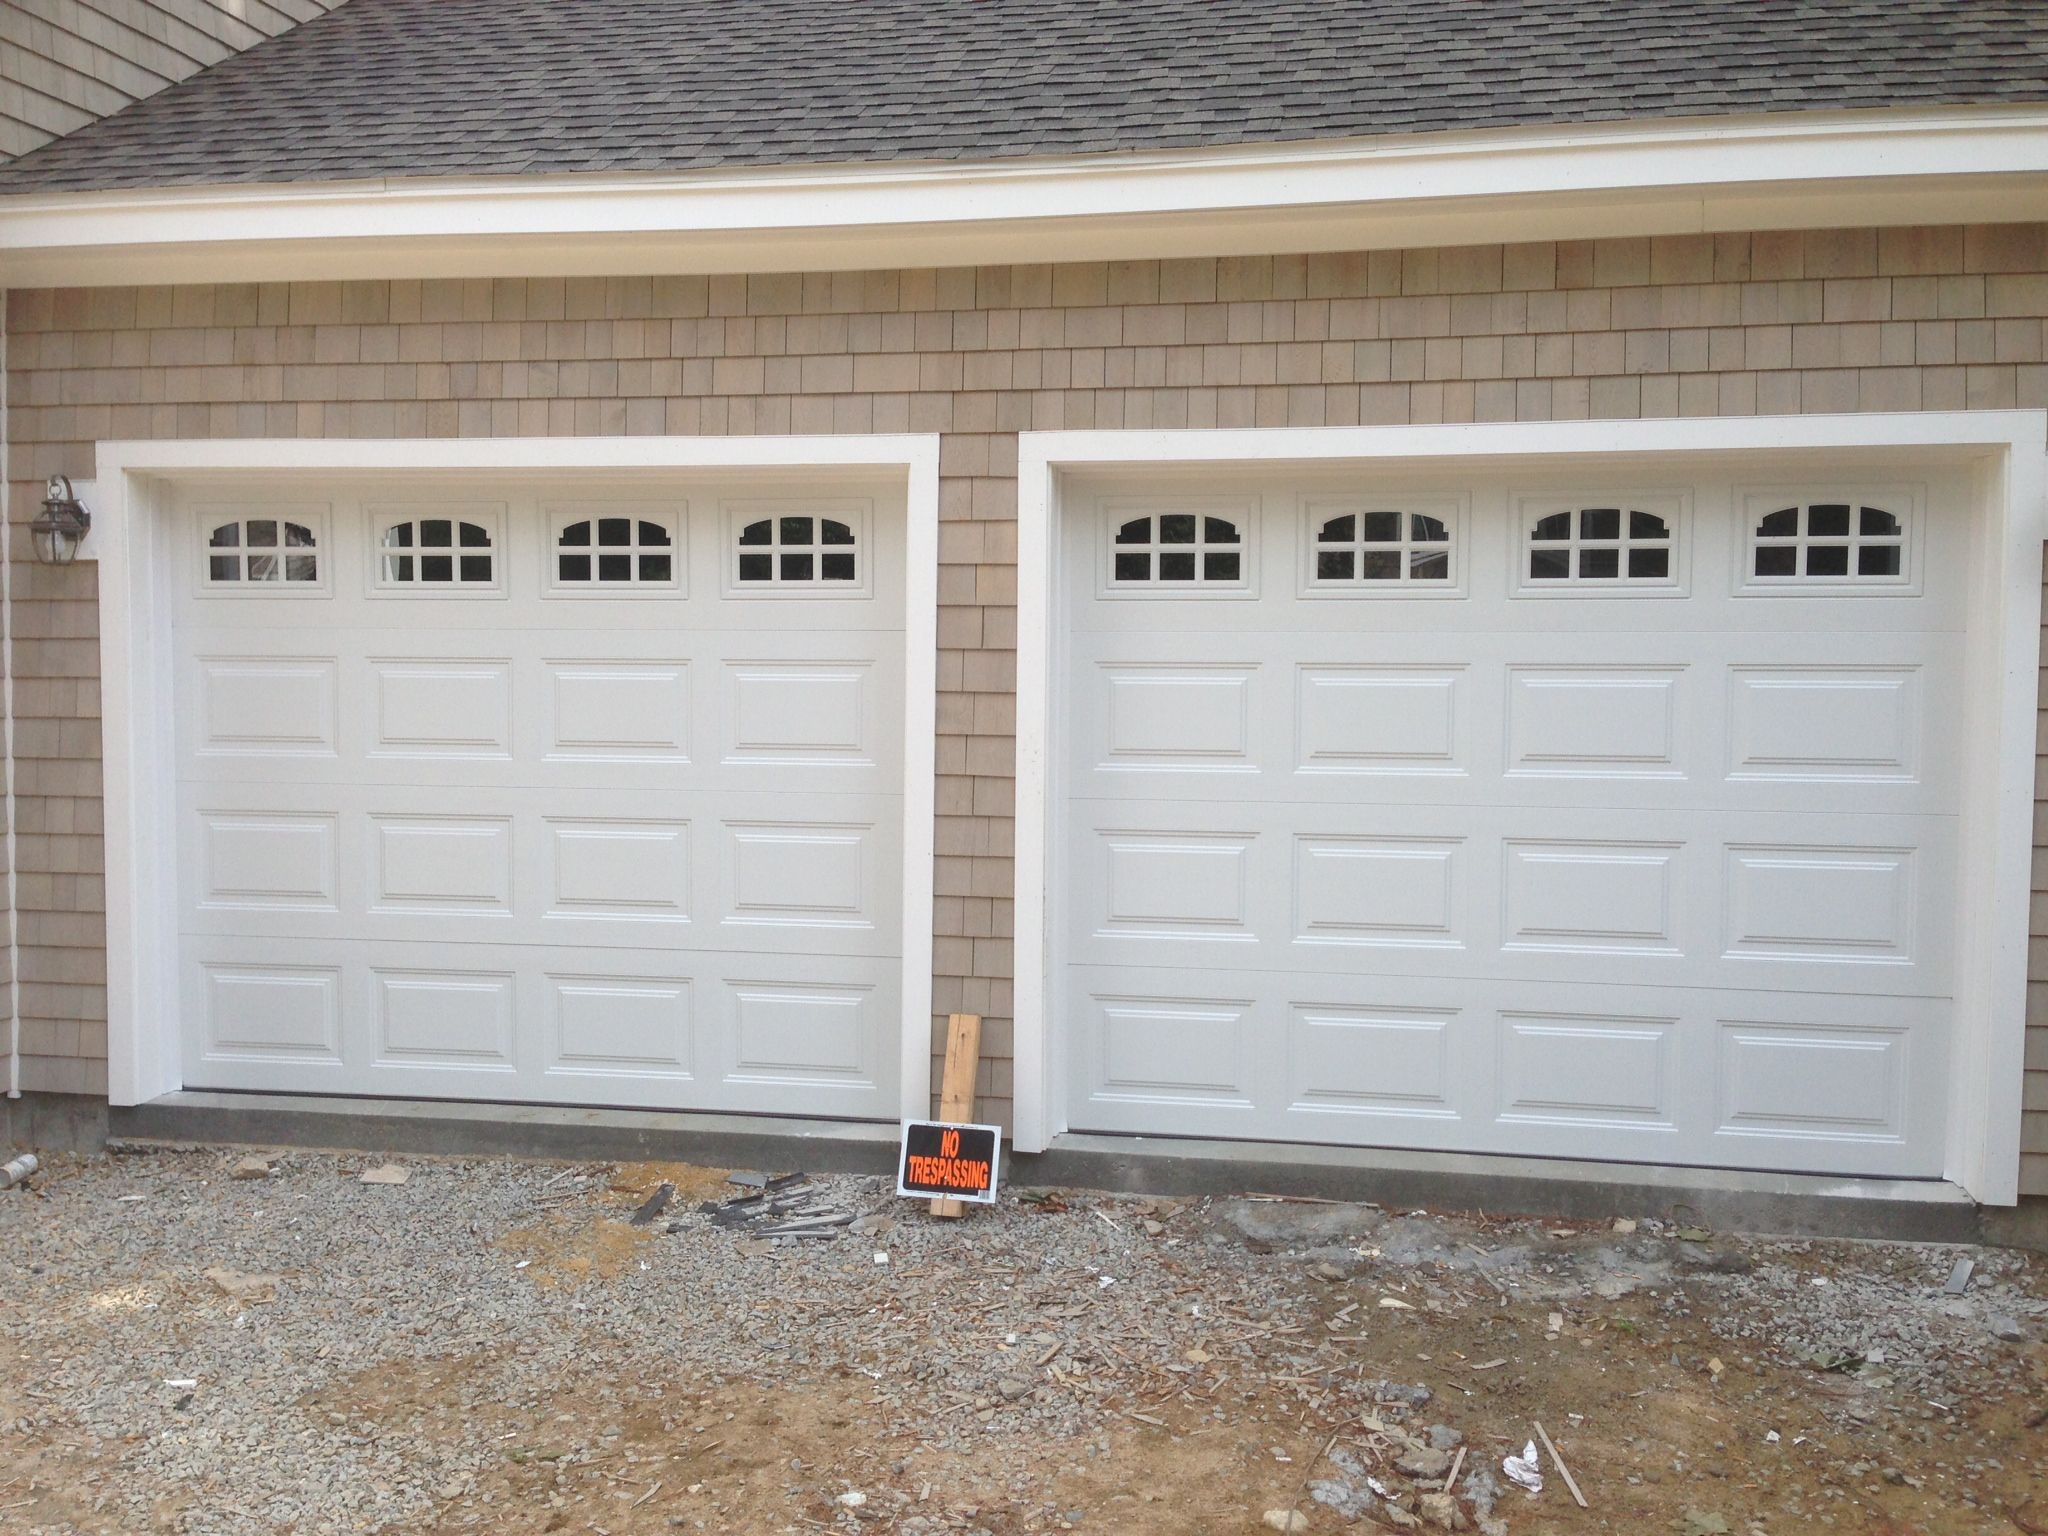 Residential Garage Doors Garage Door Styles Garage Door Panels Residential Garage Doors